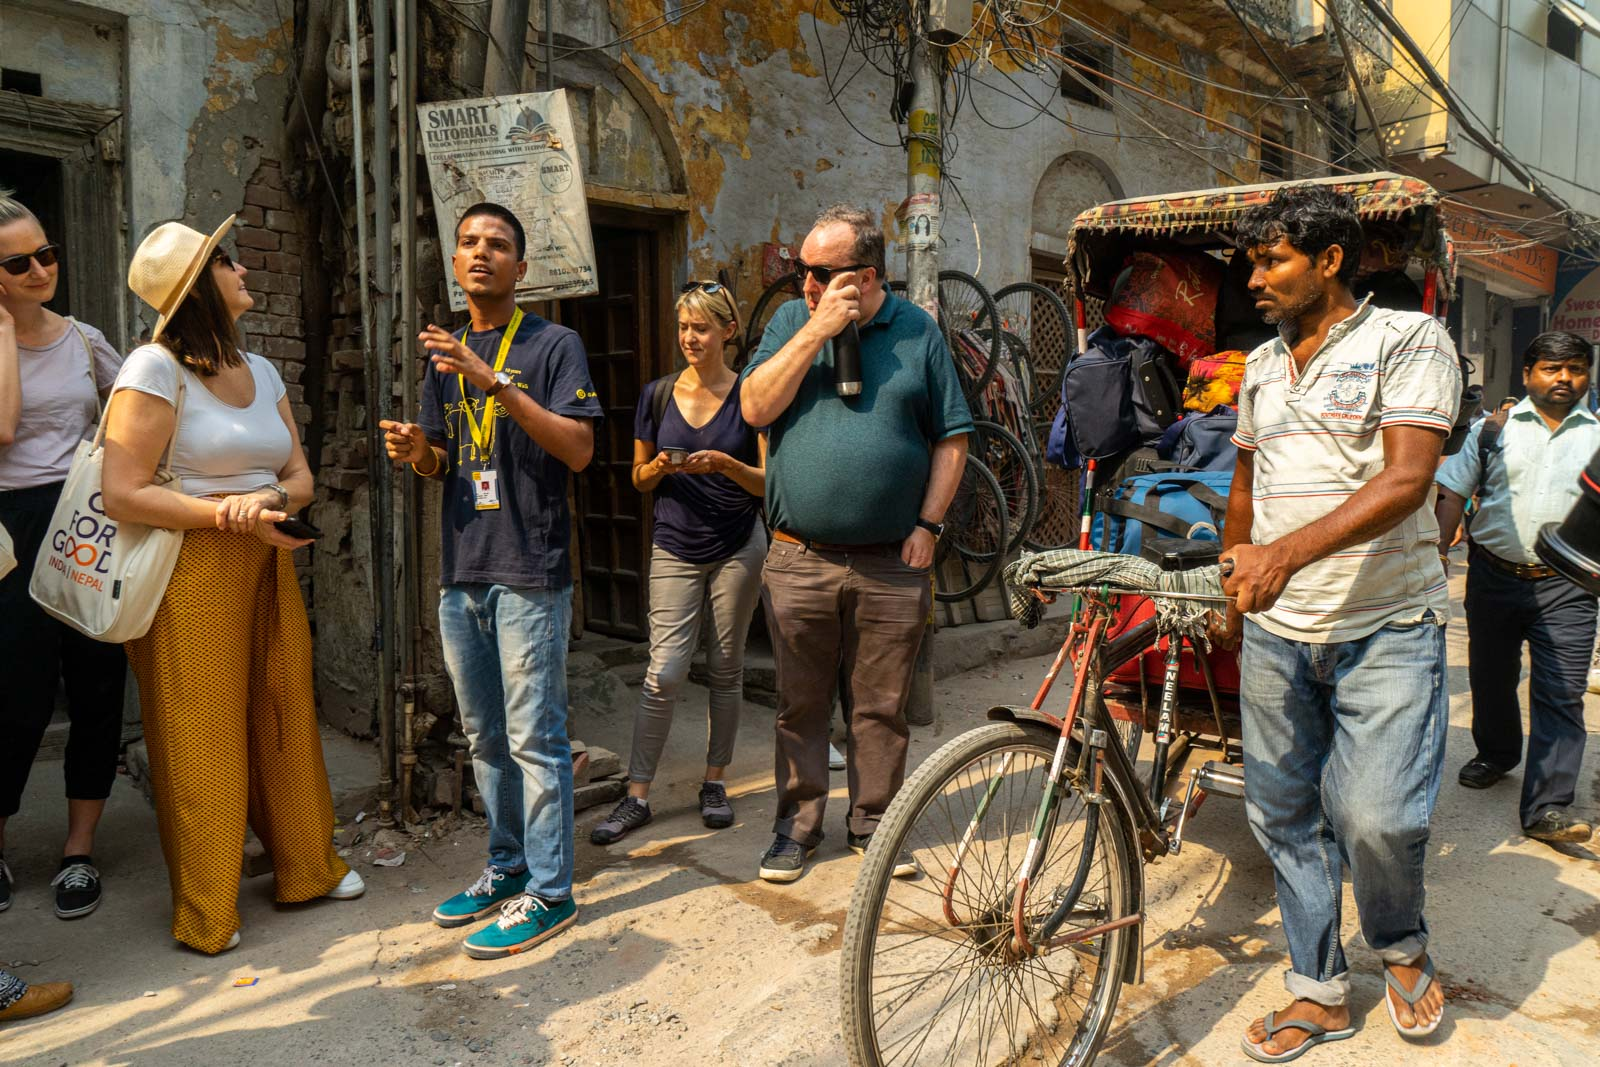 Delhi street tour with Salaam Baalak Trust, India